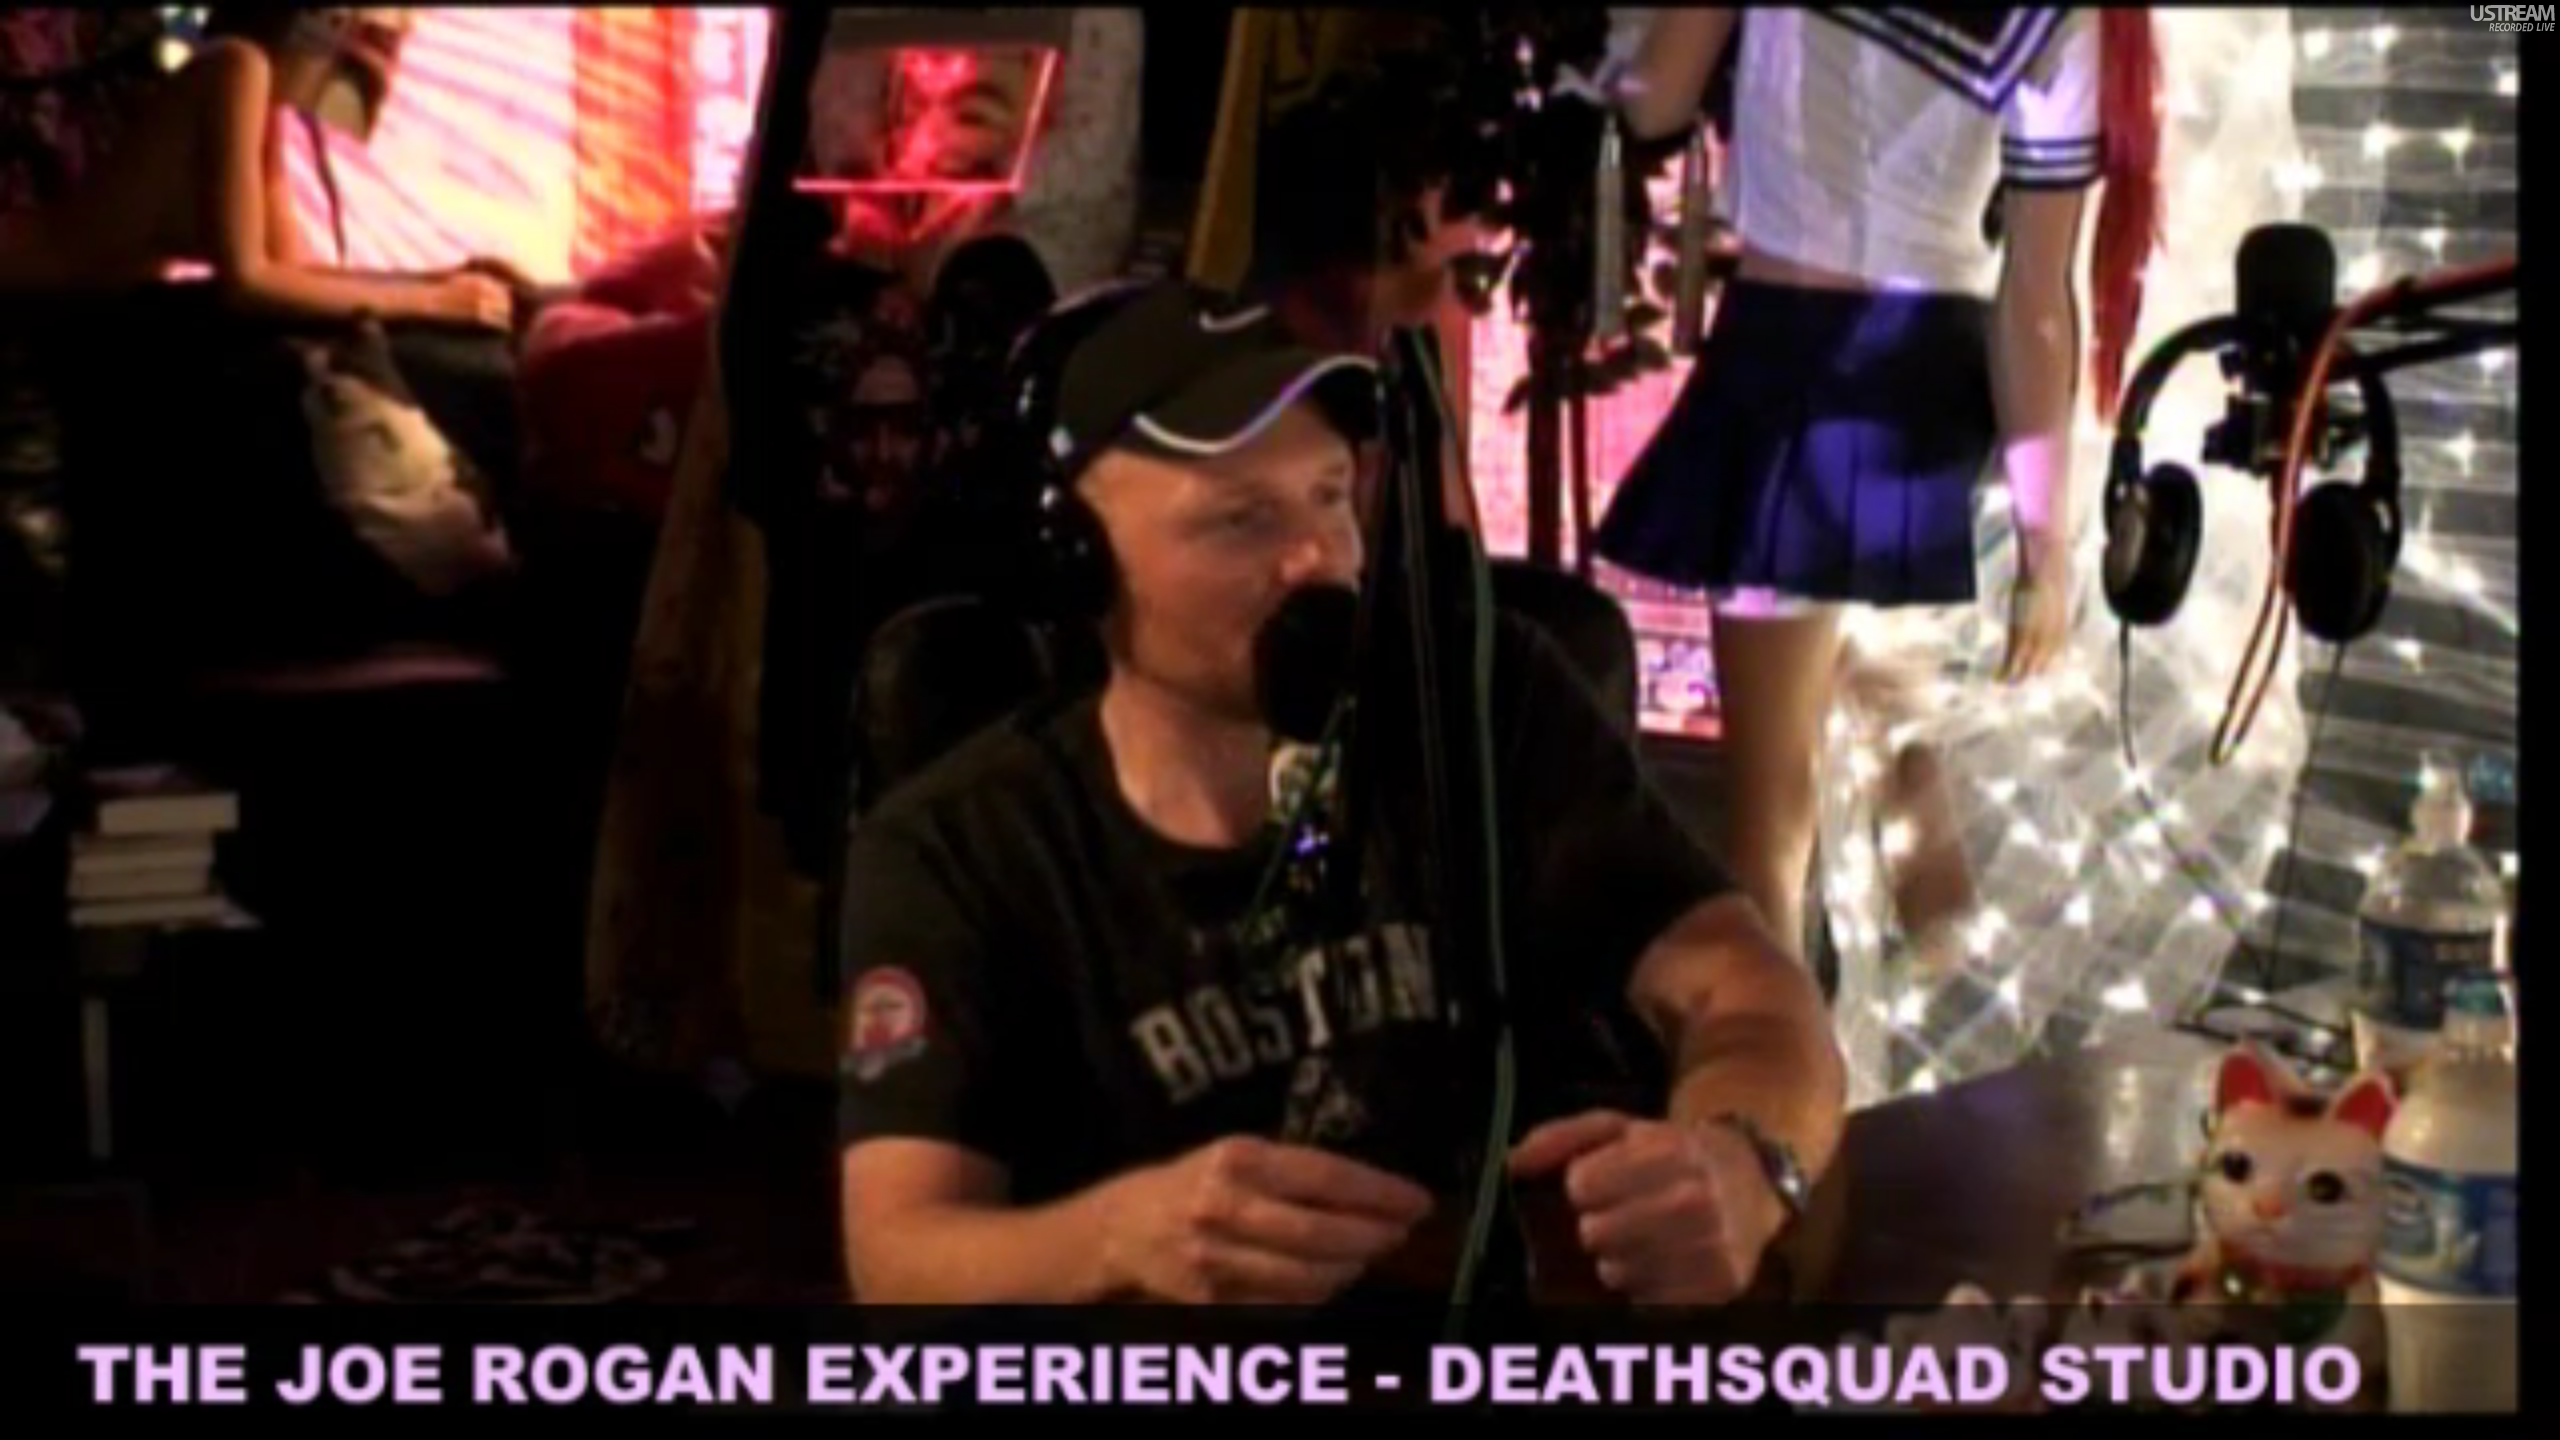 The Joe Rogan Experience #228 - Bill Burr, Brian Redban